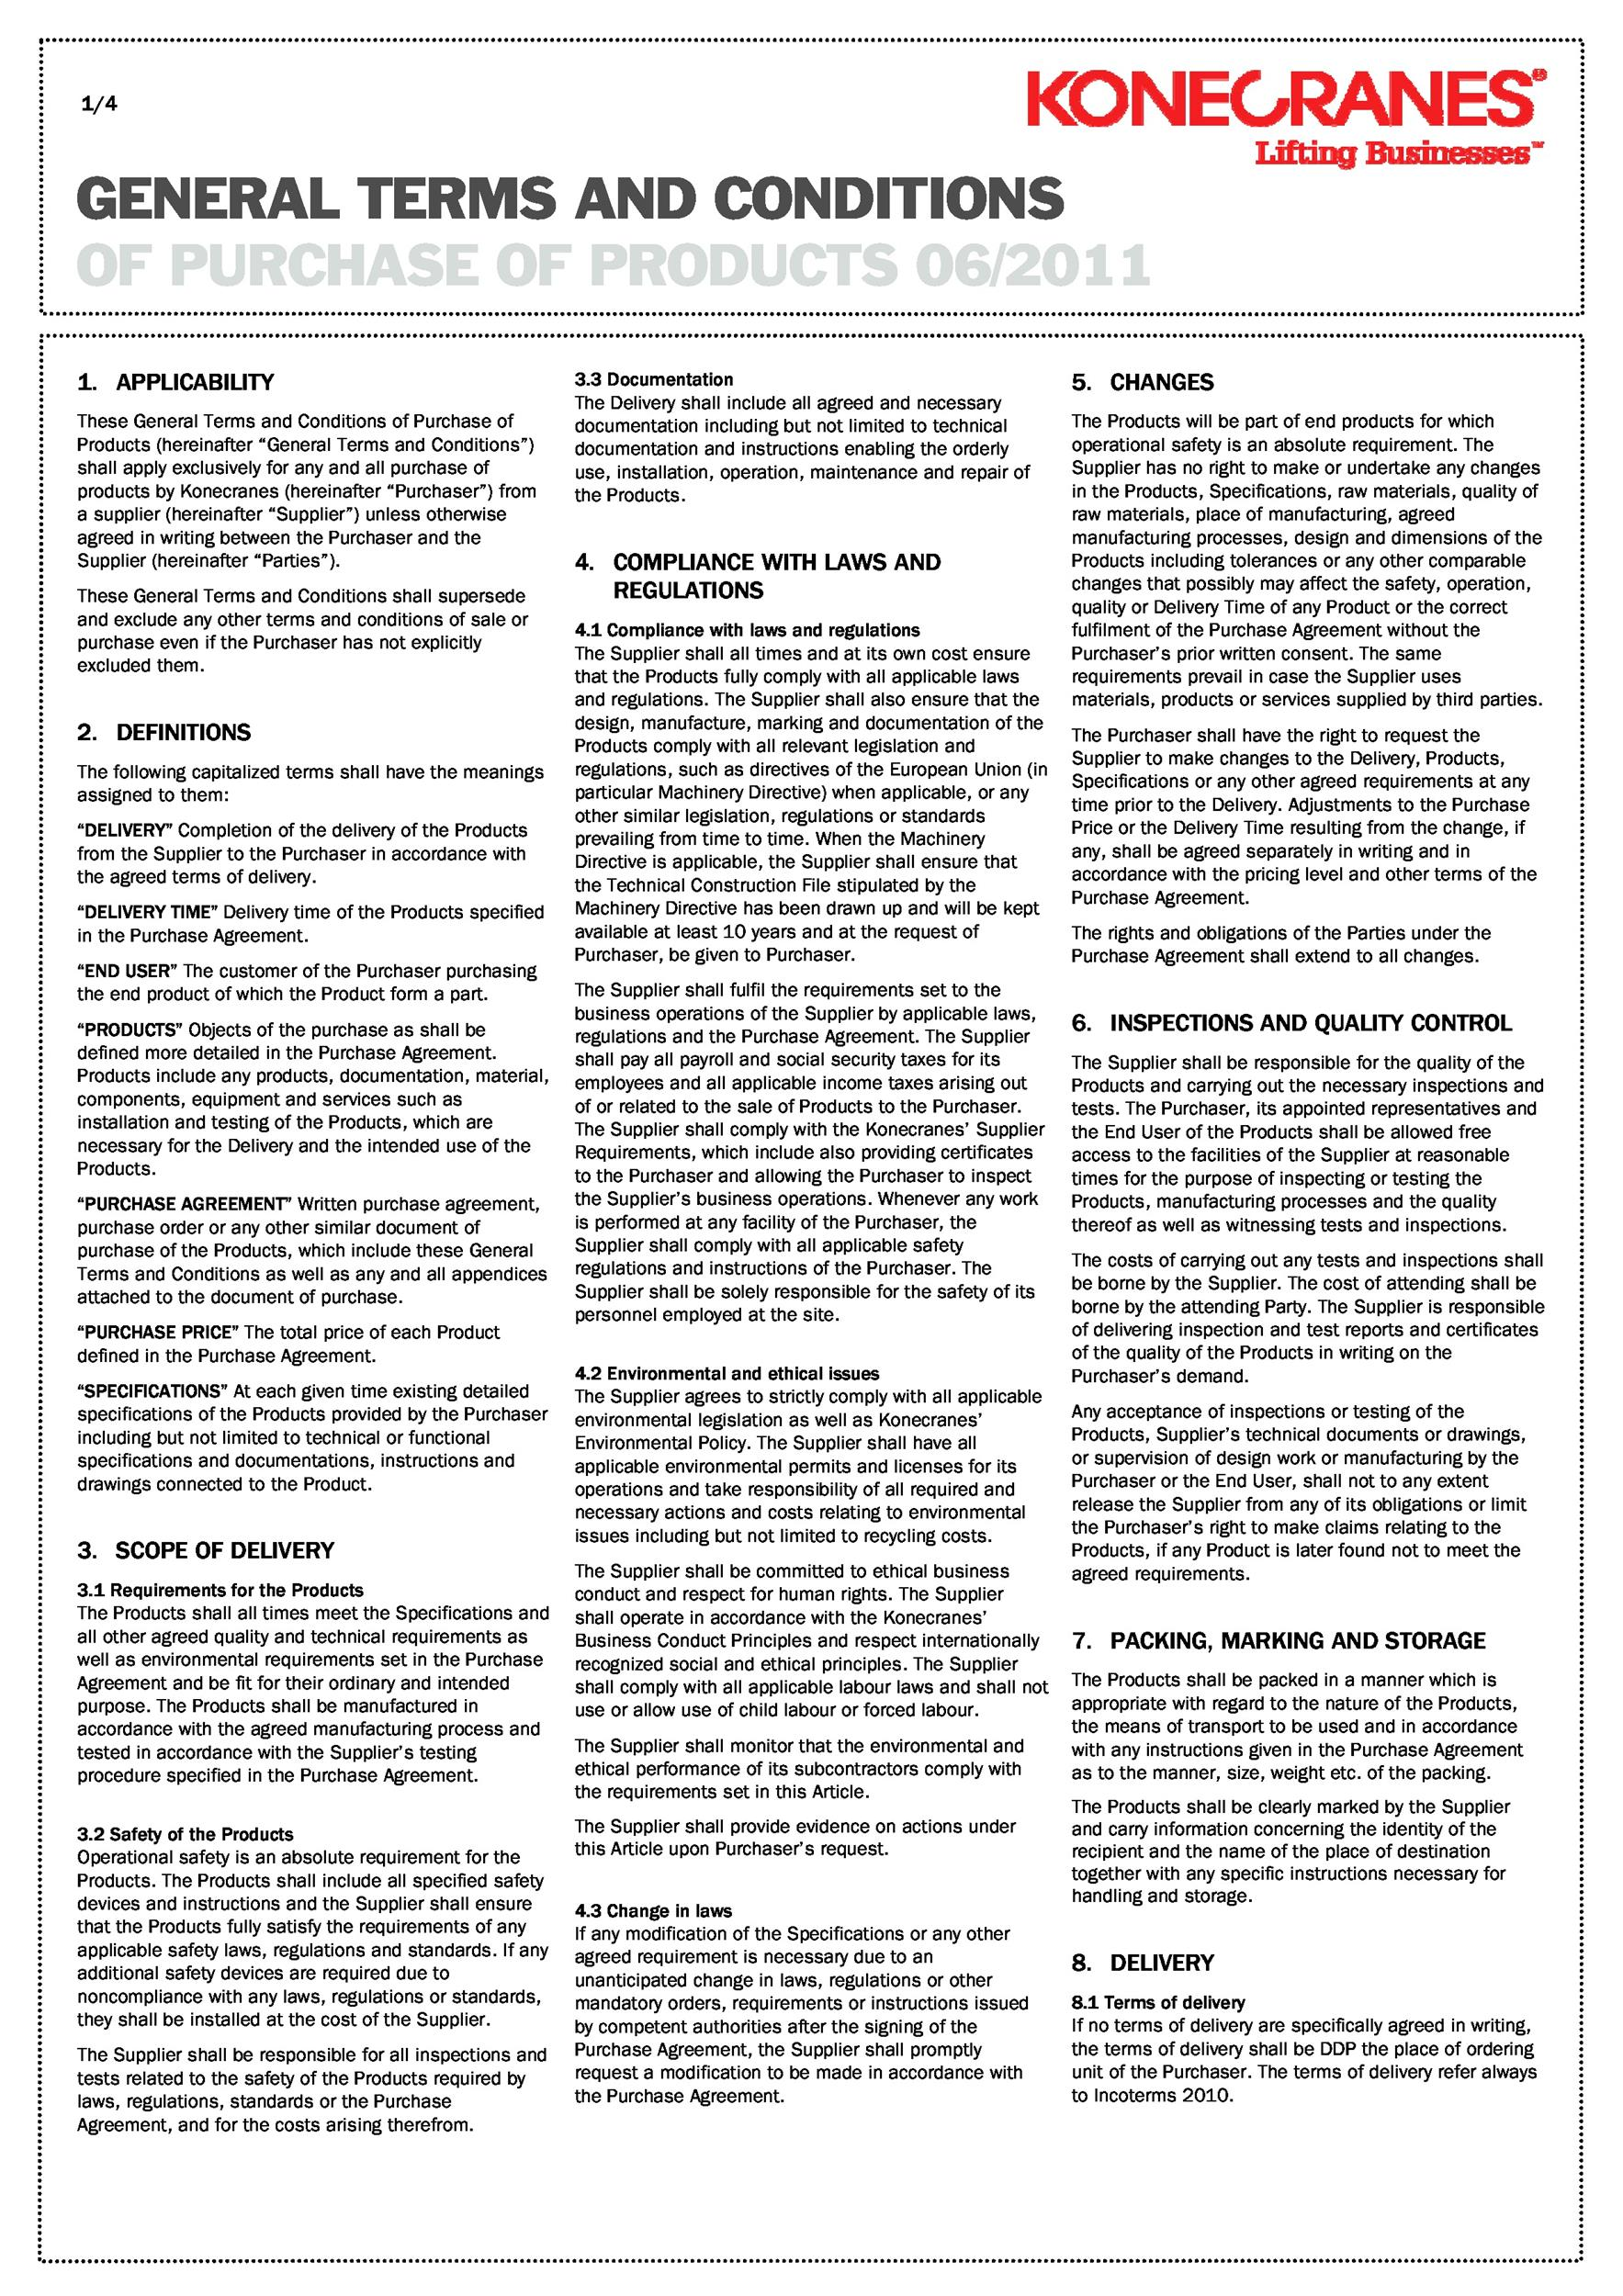 free terms and conditions template 31